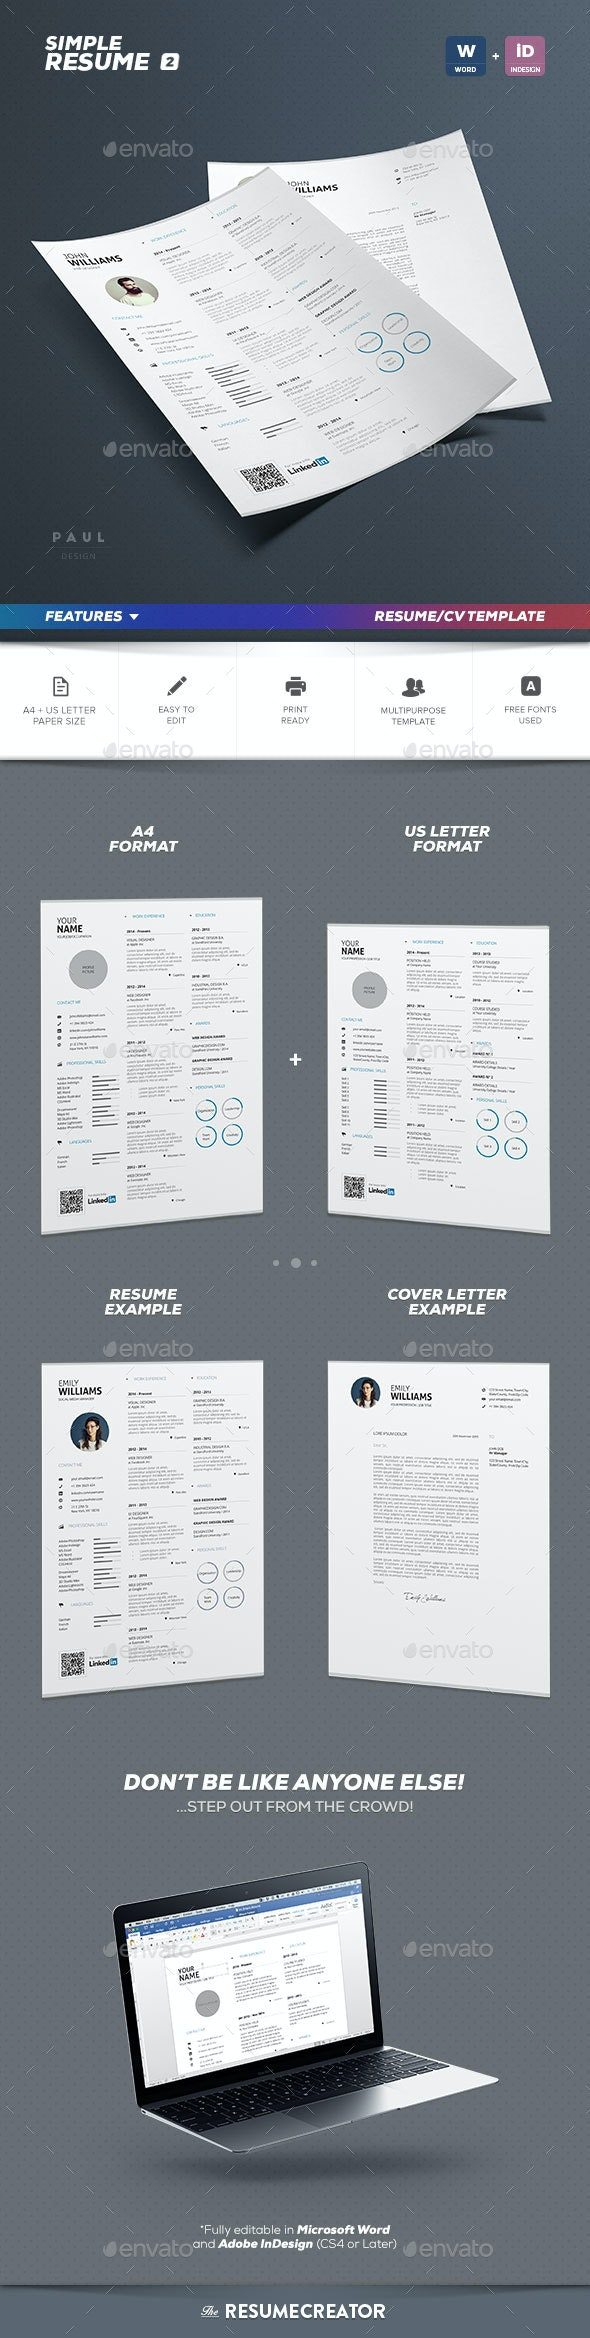 Simple Resume Vol. 2 - Resumes Stationery